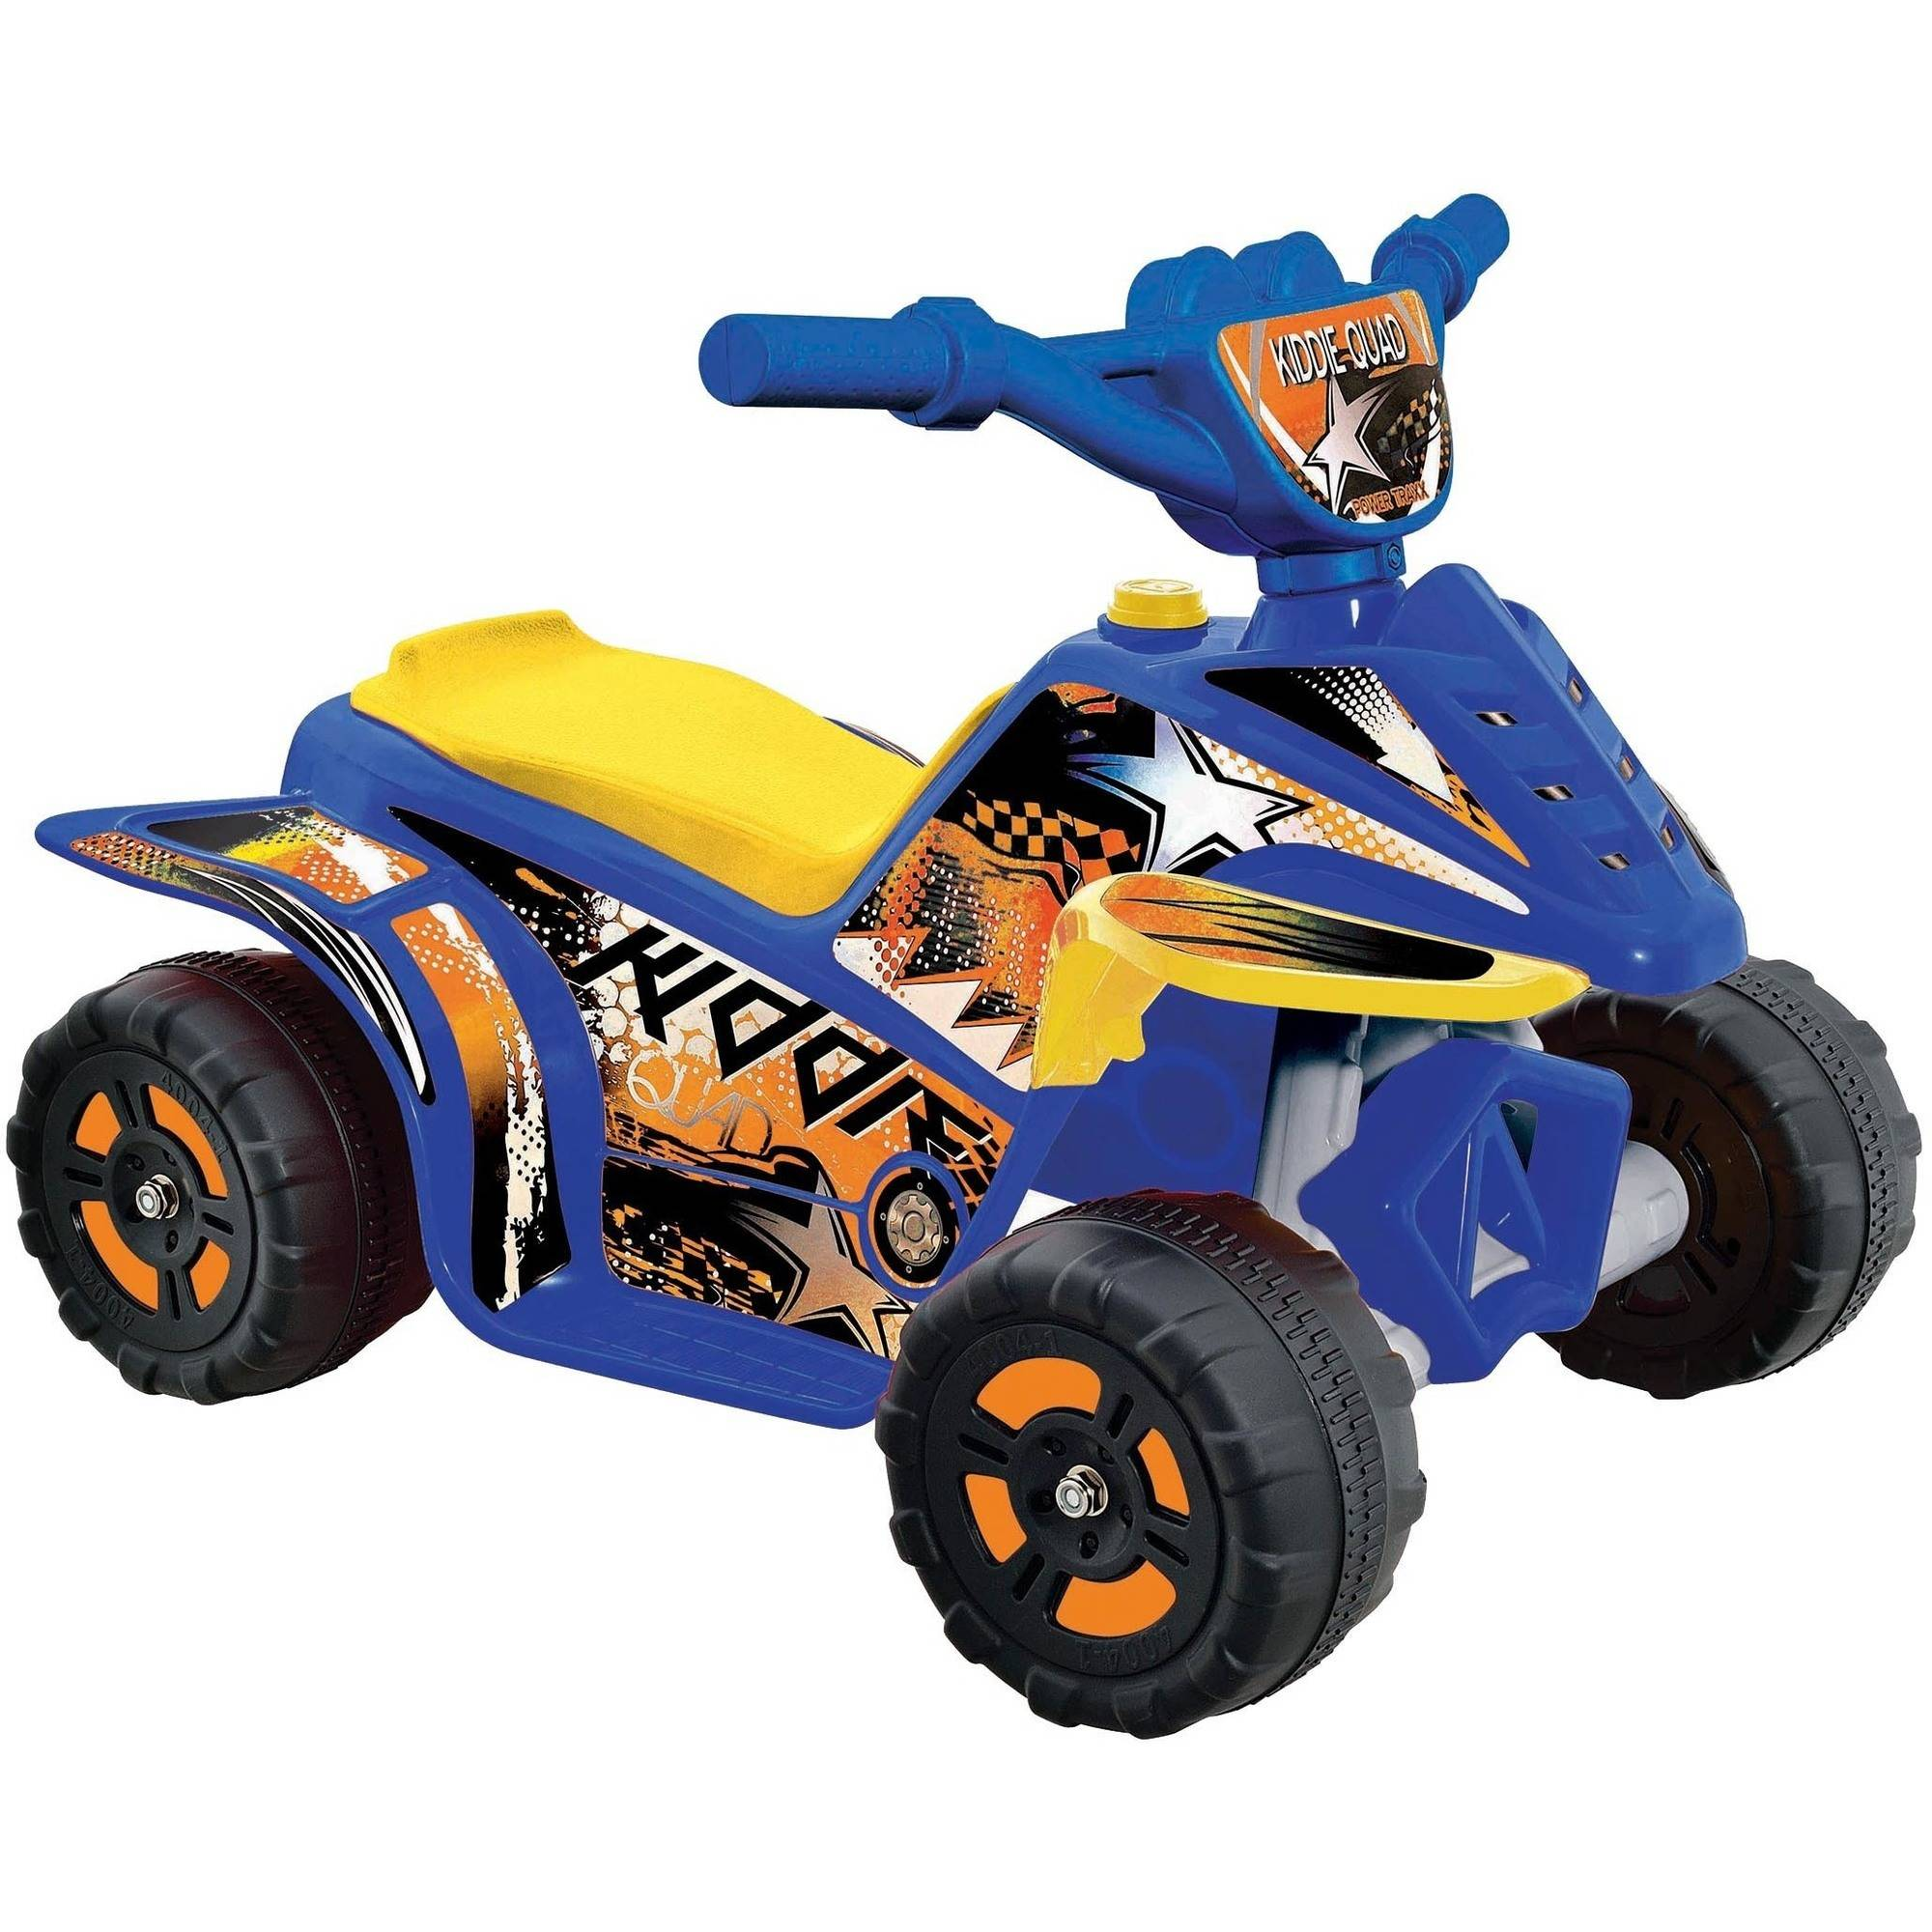 Fun Creation 6V Kiddie Quad Ride-On, Available in Various Colors